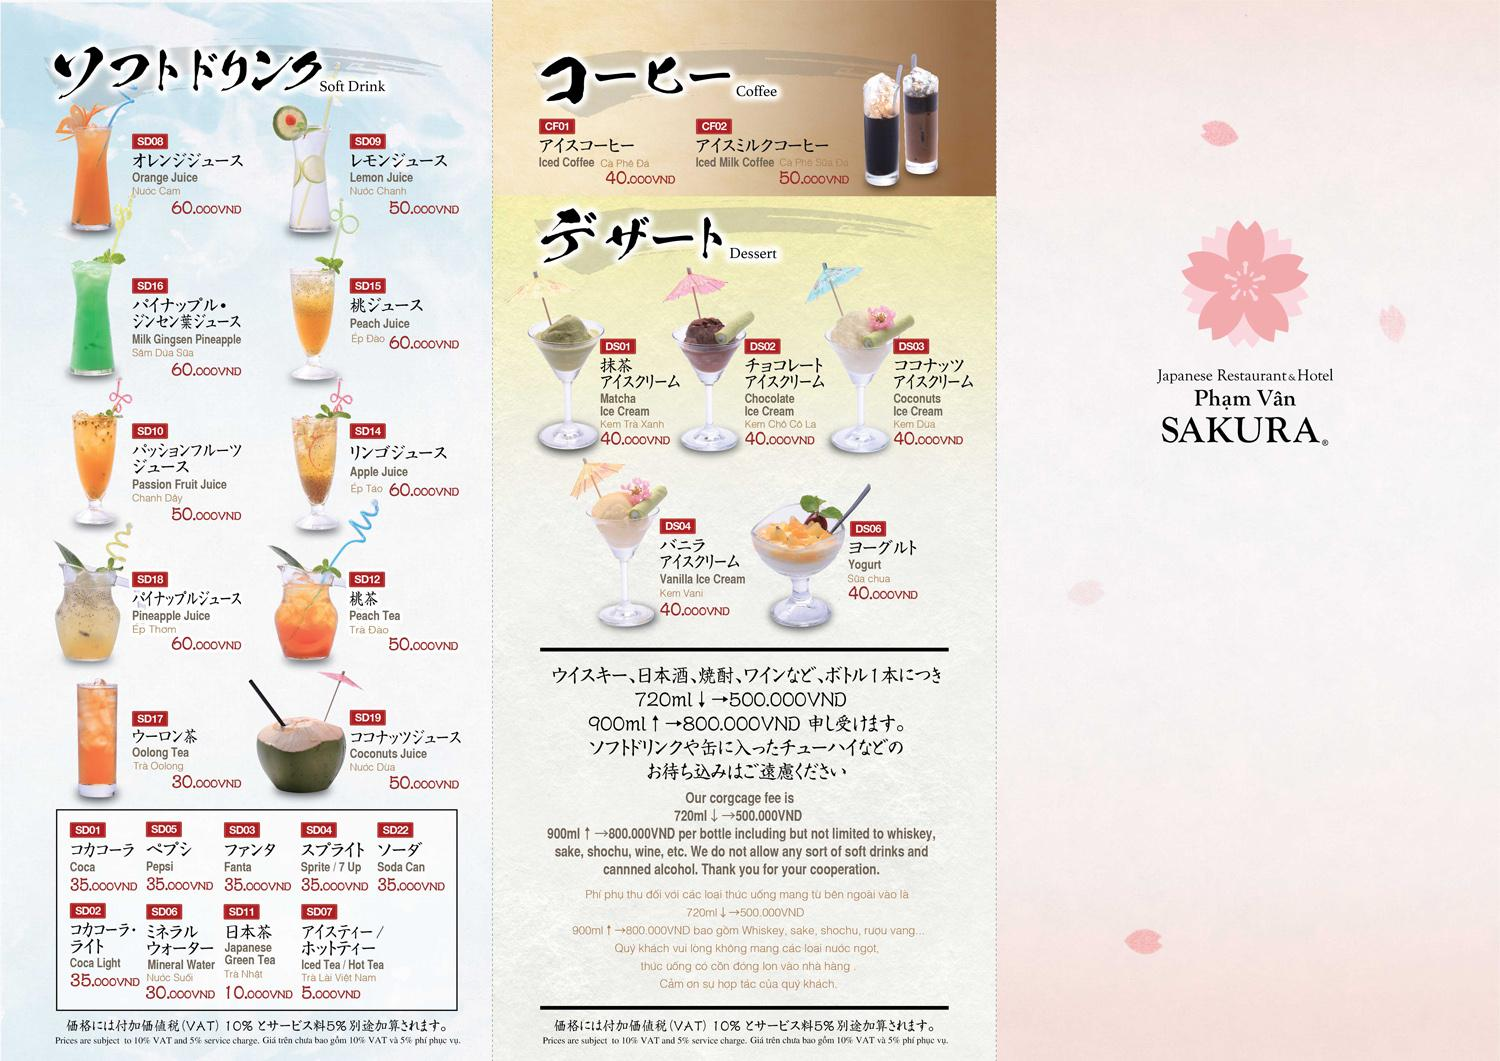 Soft drink - Cafe